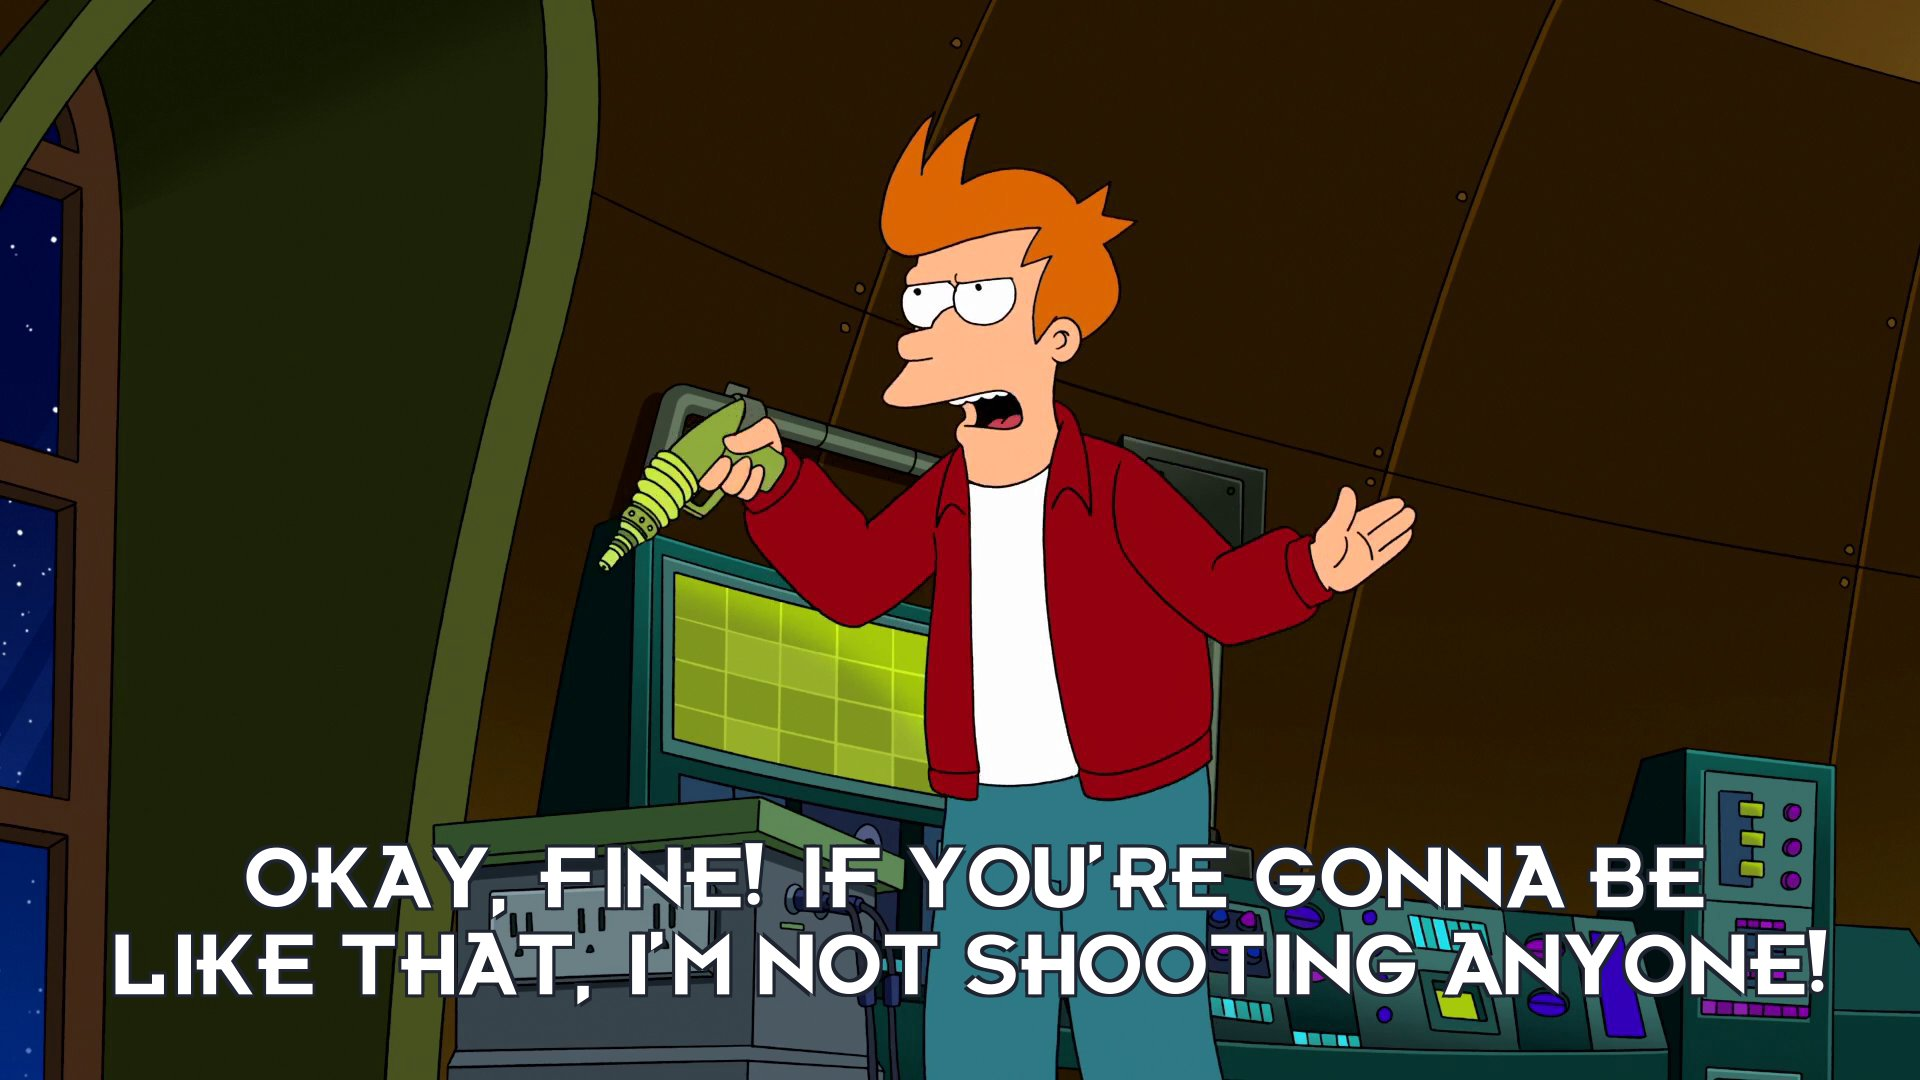 Philip J Fry: Okay, fine! If you're gonna be like that, I'm not shooting anyone!